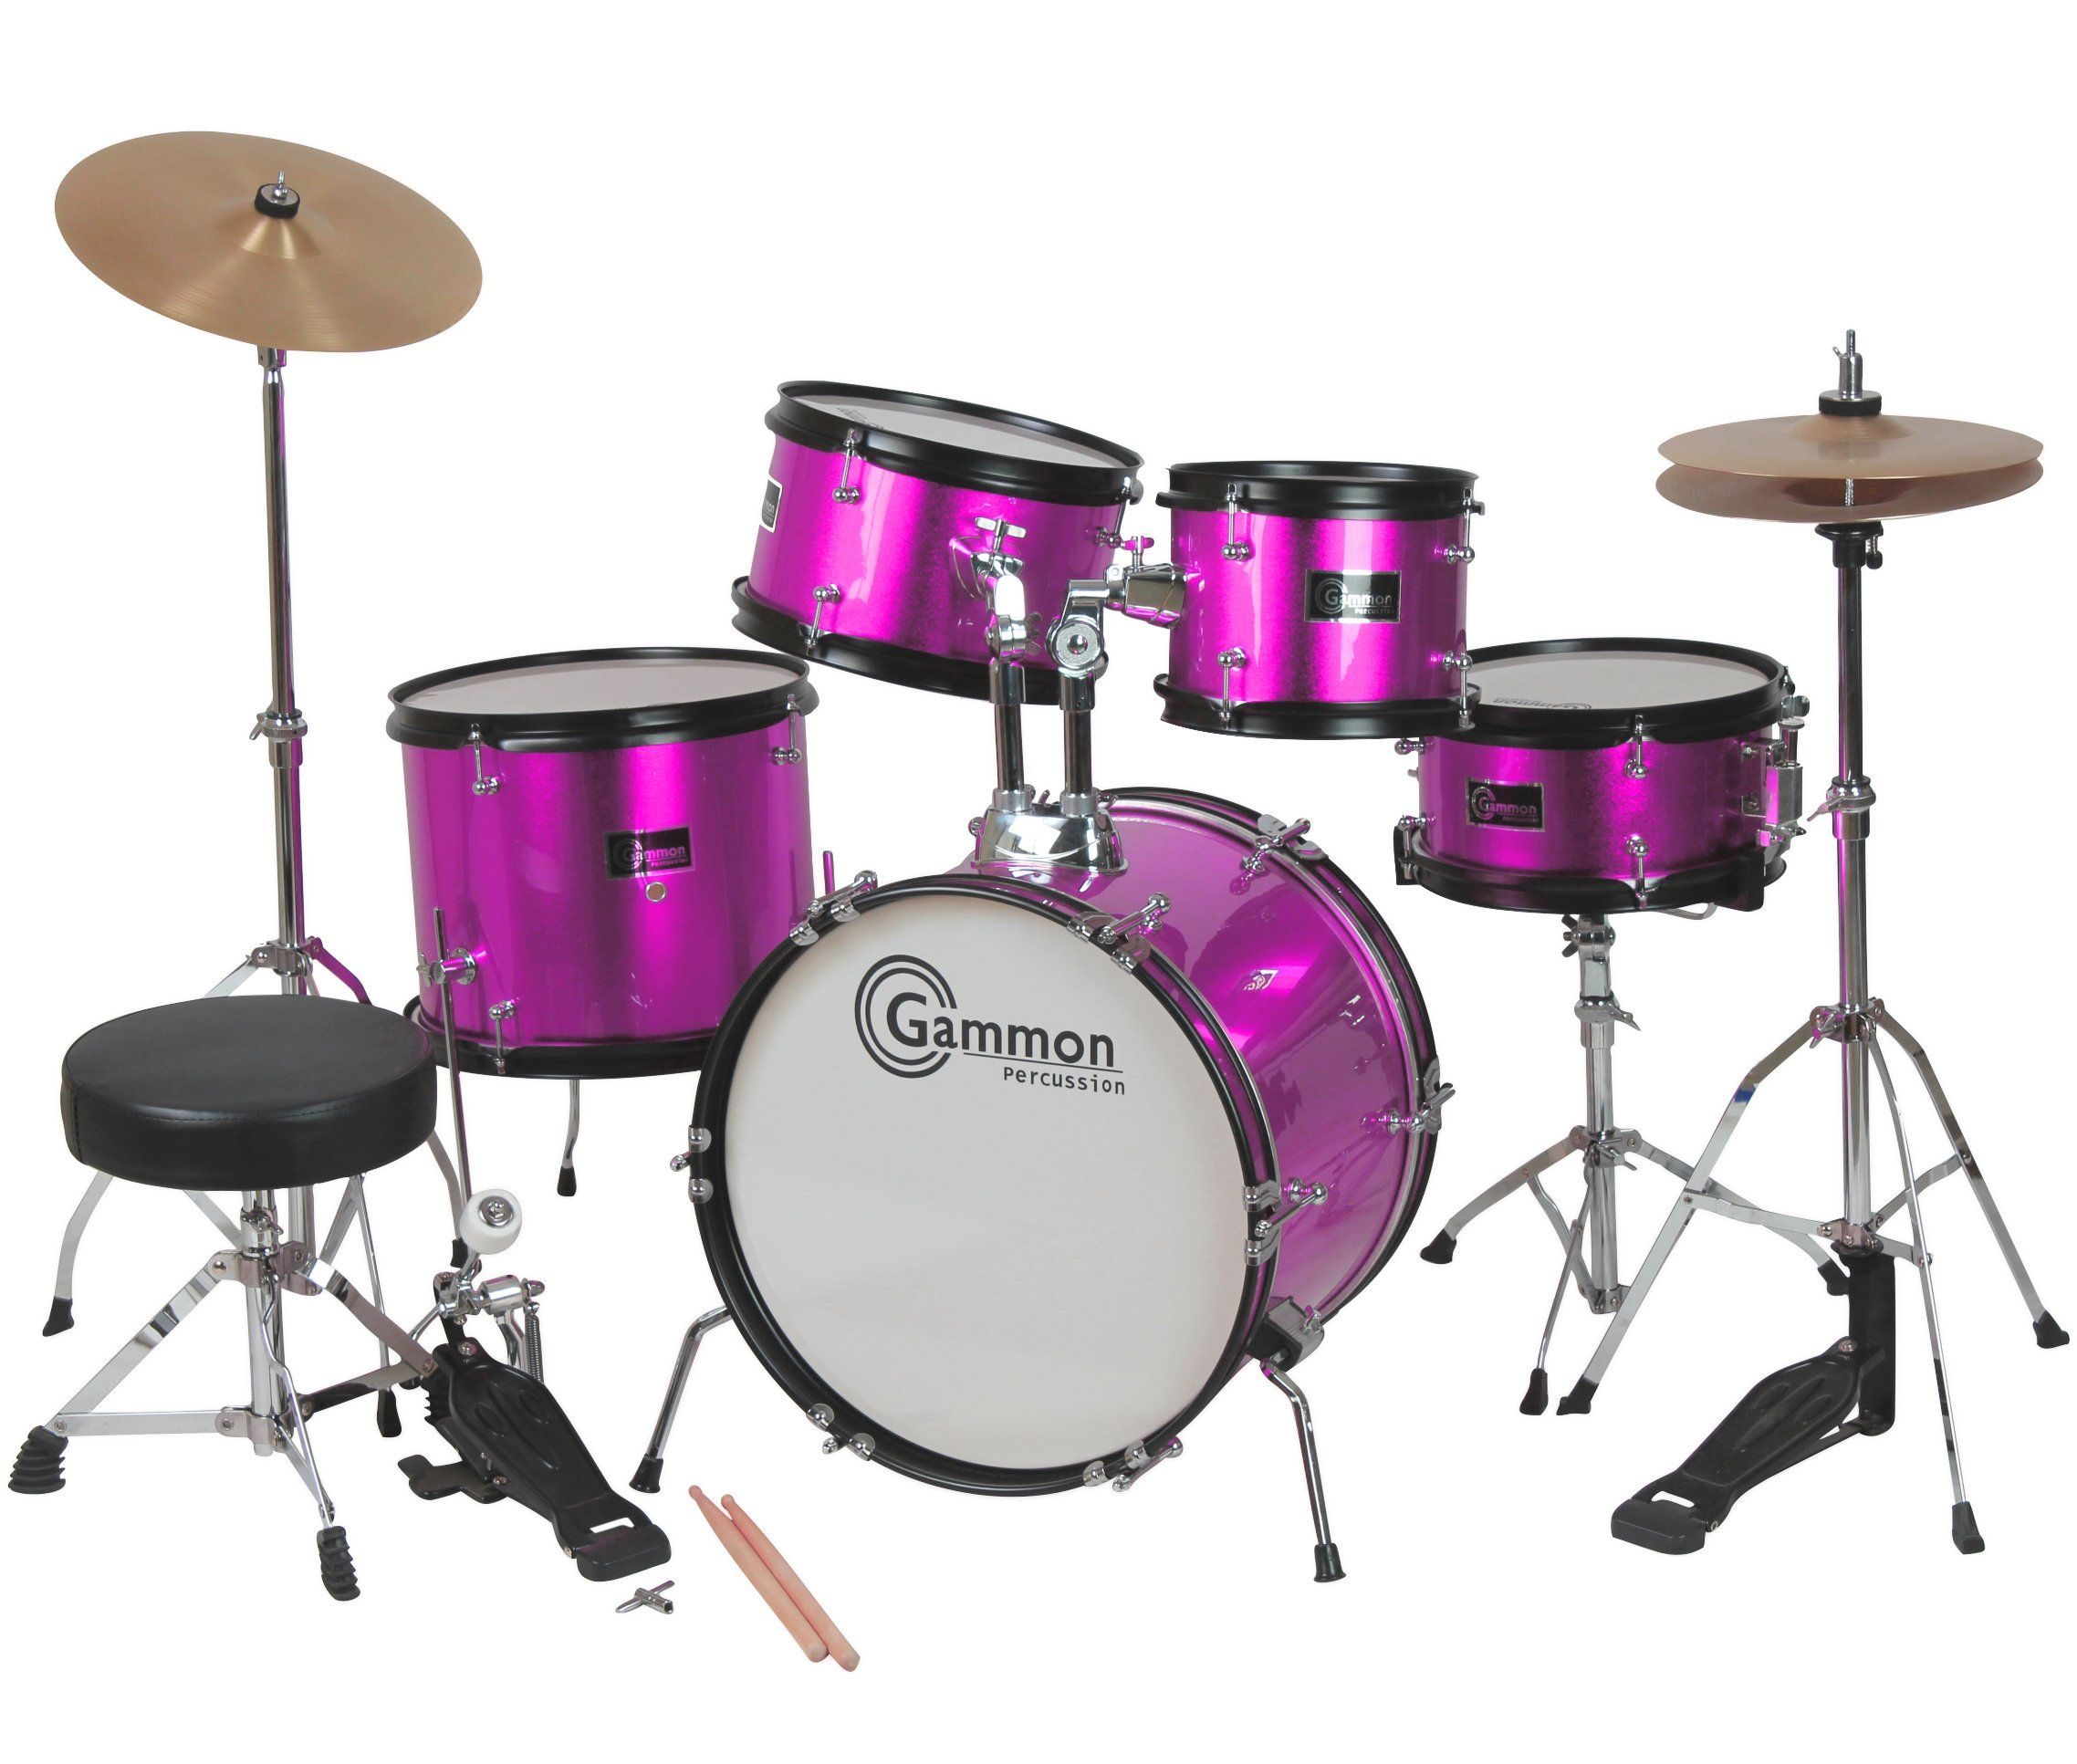 Princess Pink Drum Set with Cymbals Stool Stands Sticks Complete Junior Kit by Gammon Percussion  sc 1 st  Pinterest & Princess Pink Drum Set with Cymbals Stool Stands Sticks Complete ... islam-shia.org